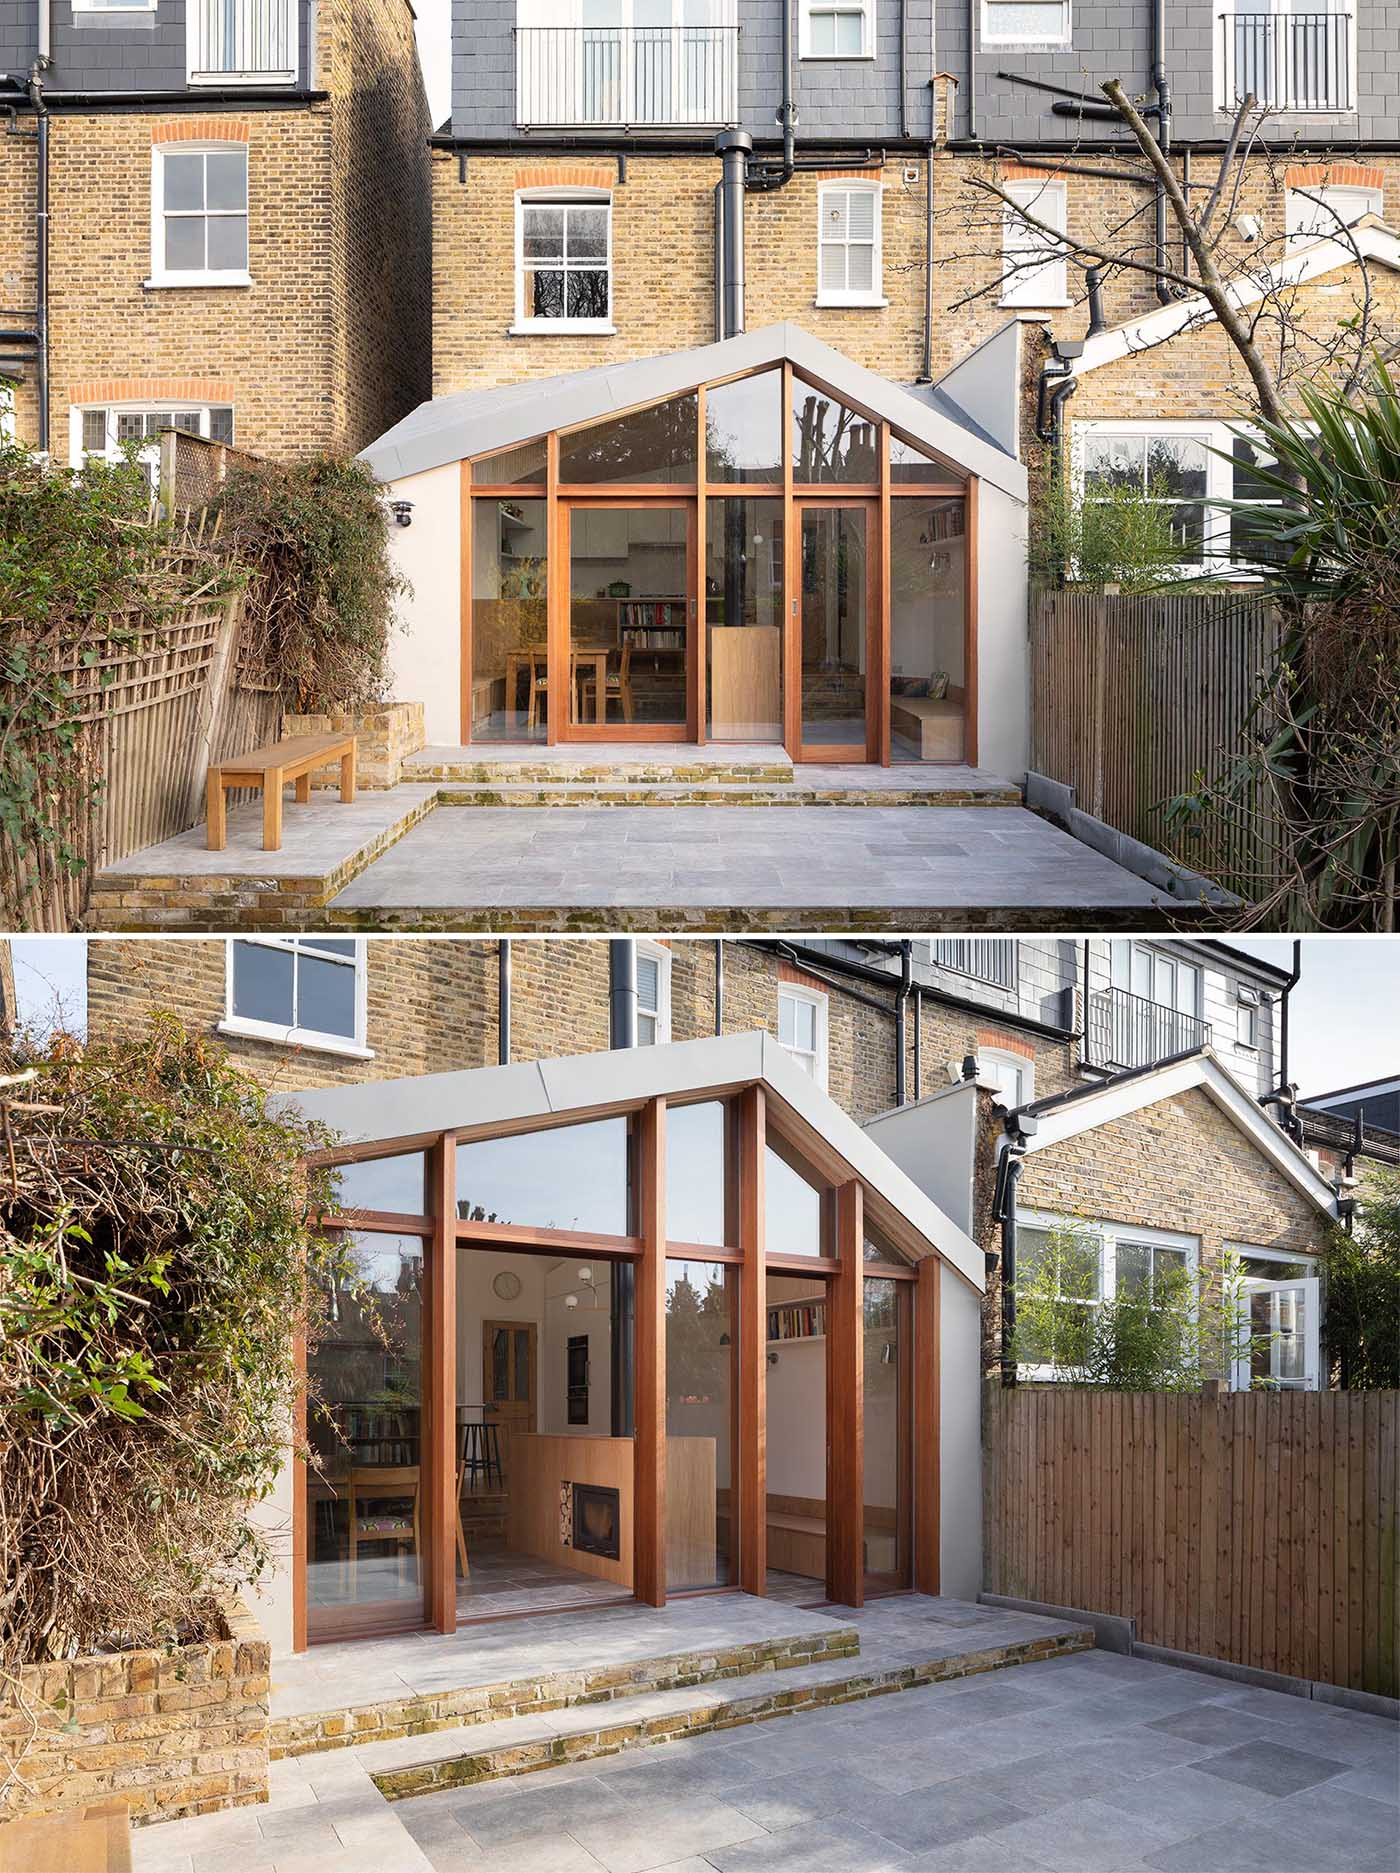 Turner Architects has recently completed a new addition for a growing family that needed a larger kitchen and wanted a family room that opened up the garden.